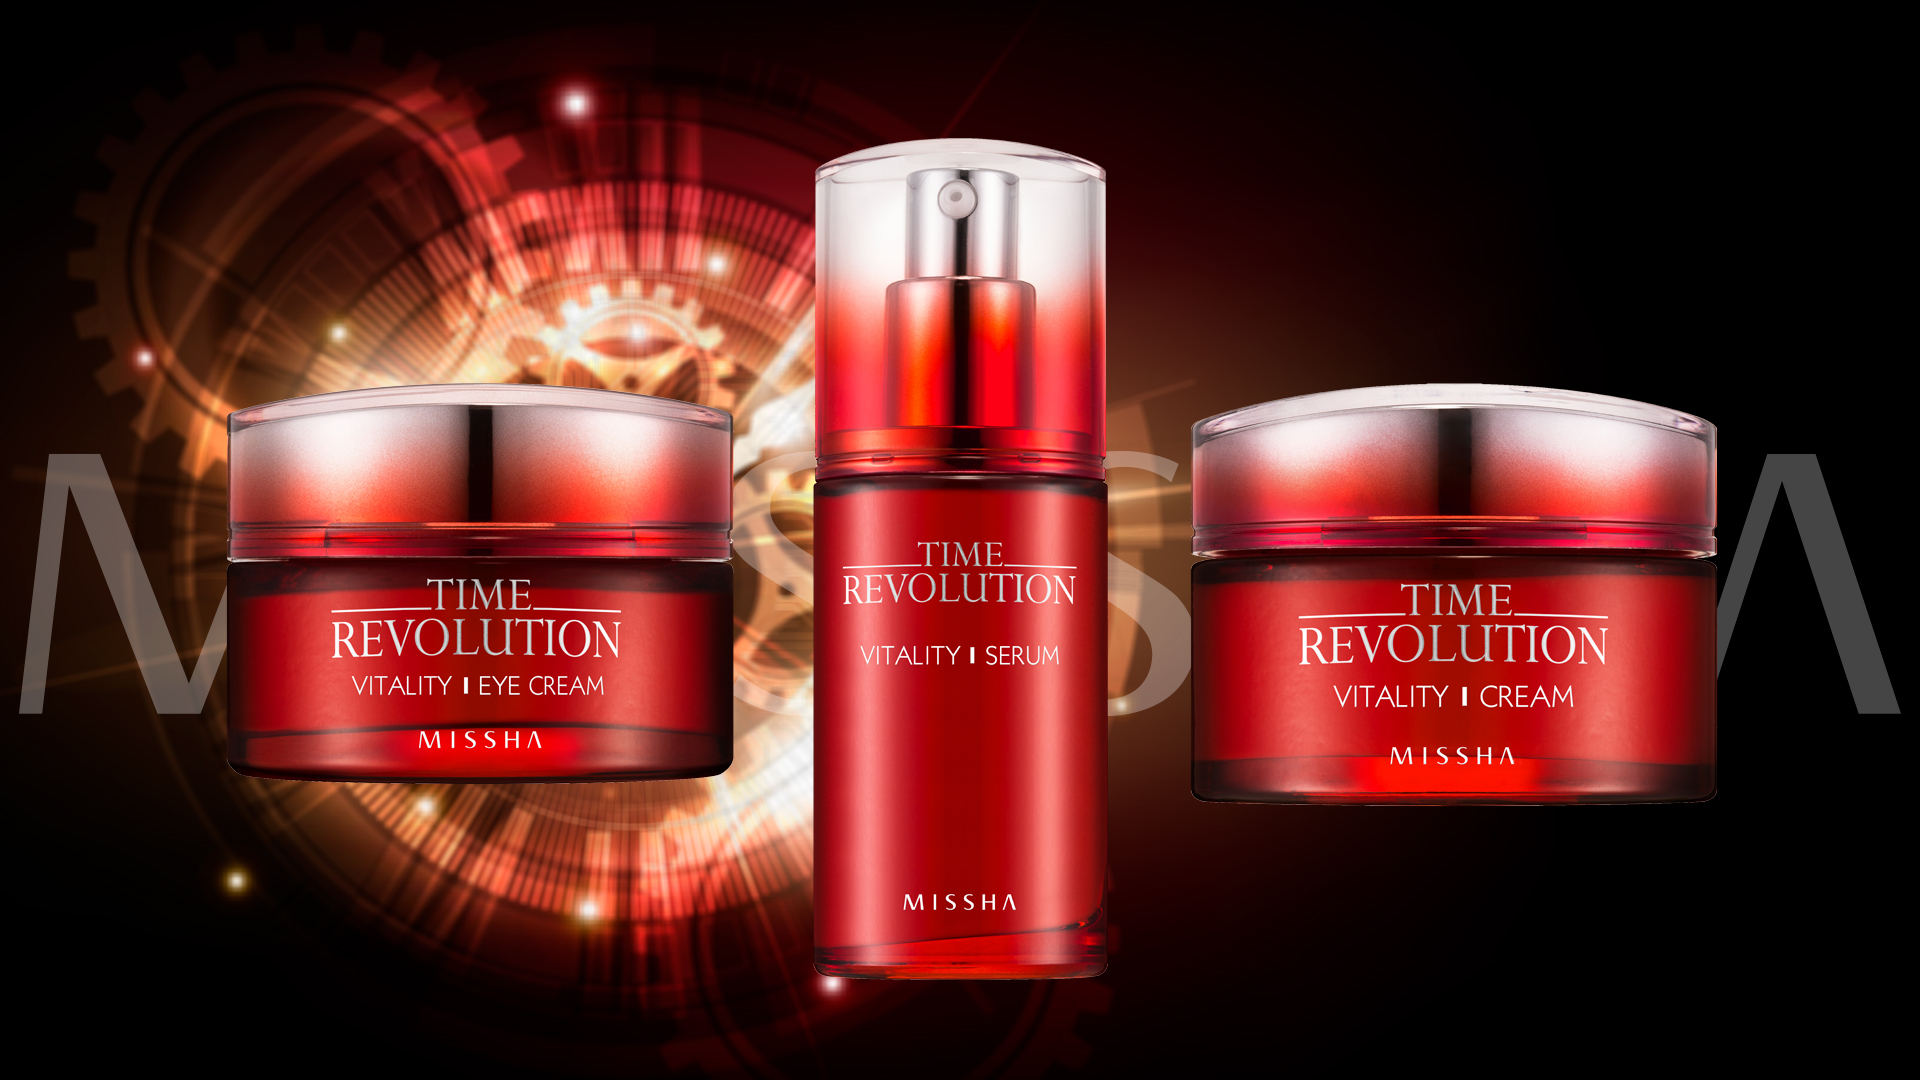 Missha Vitality Time Revolution